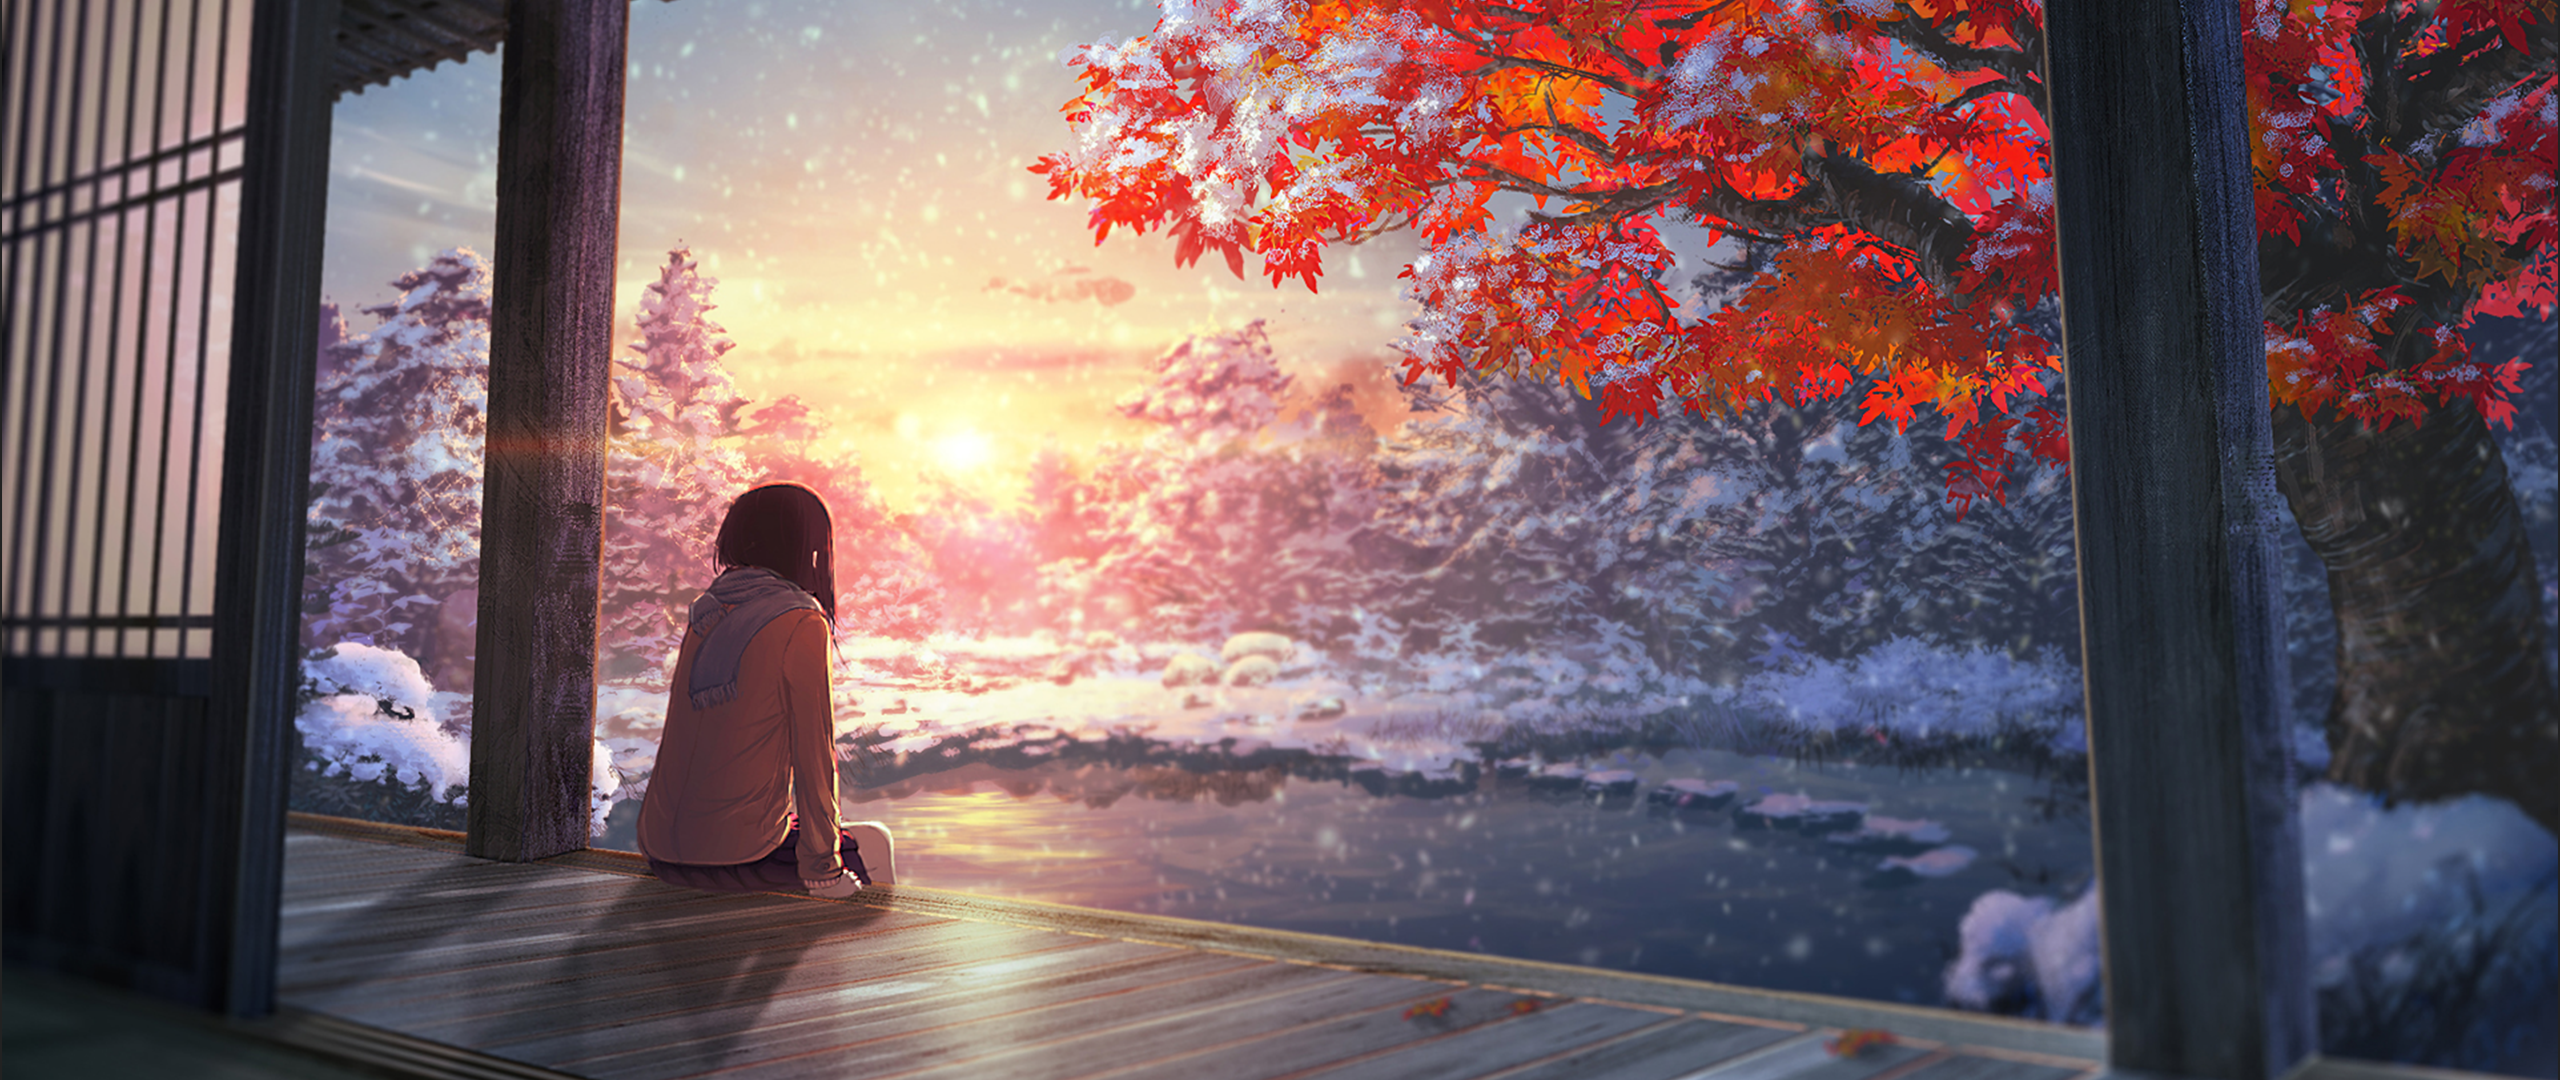 ultra wide, Japan, Anime girls, Artwork, Snow, Sunlight